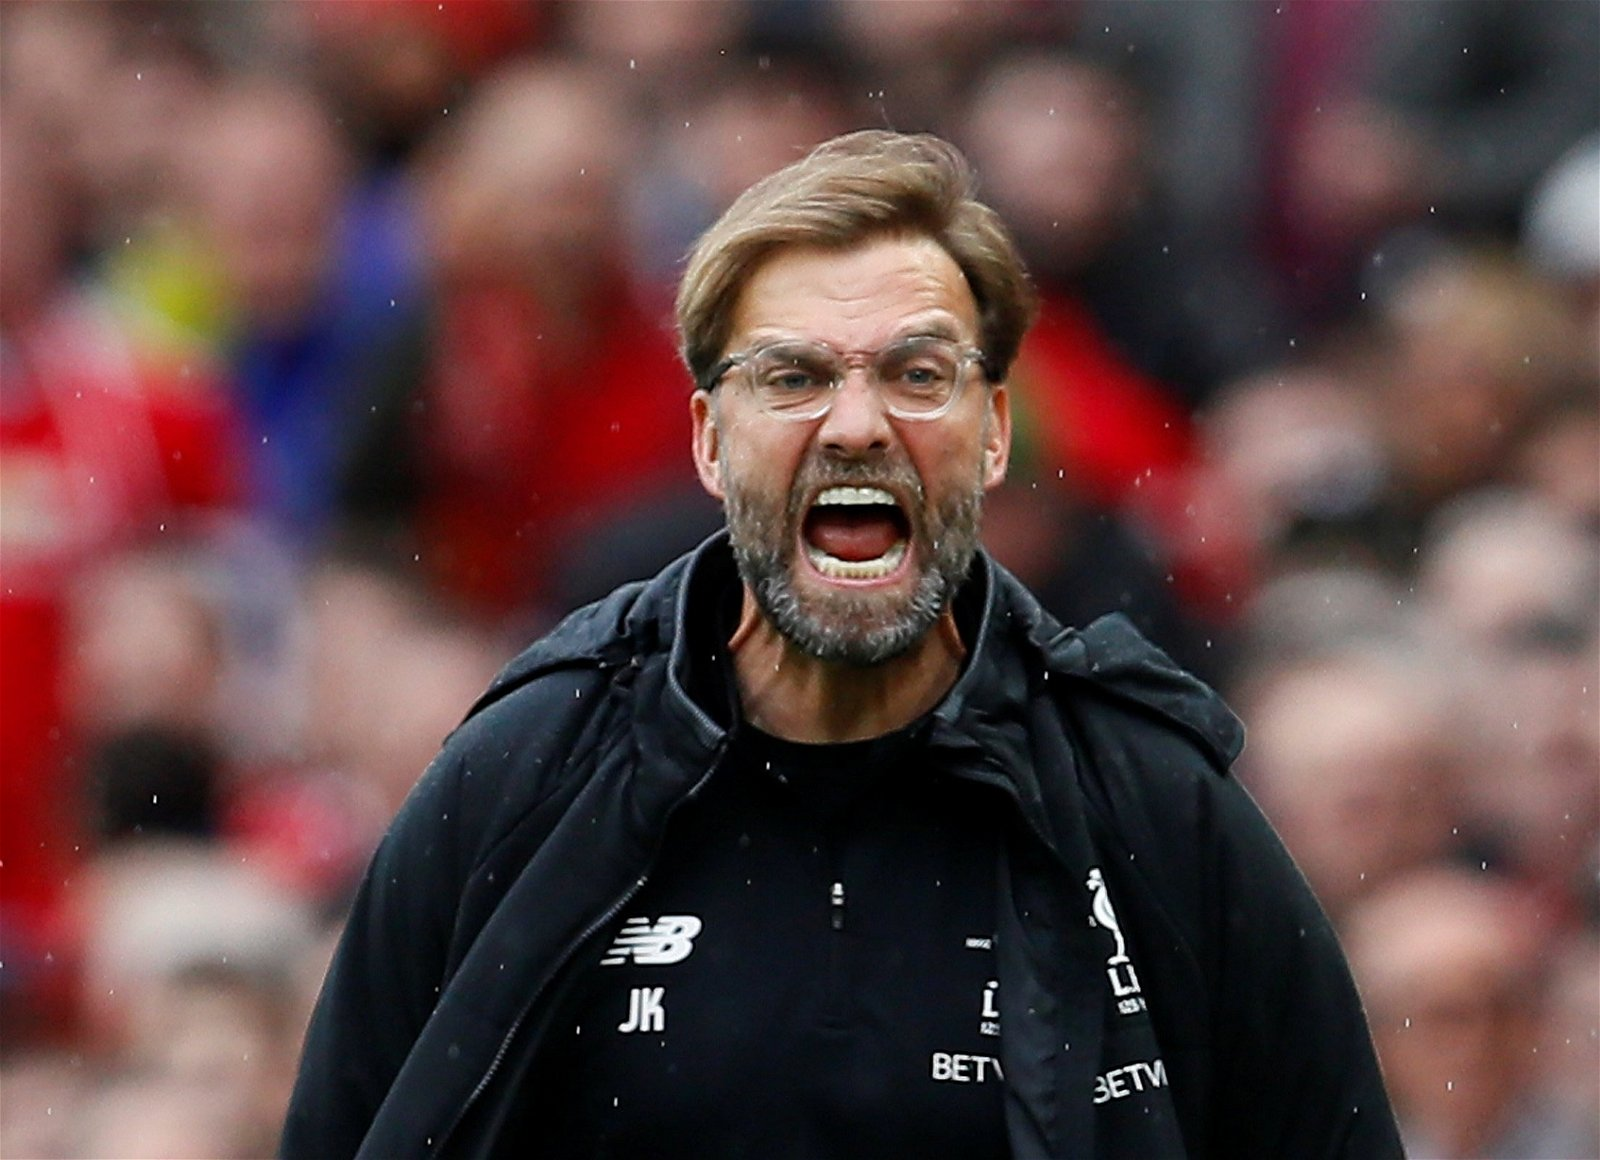 Jurgen Klopp barking orders at Old Trafford